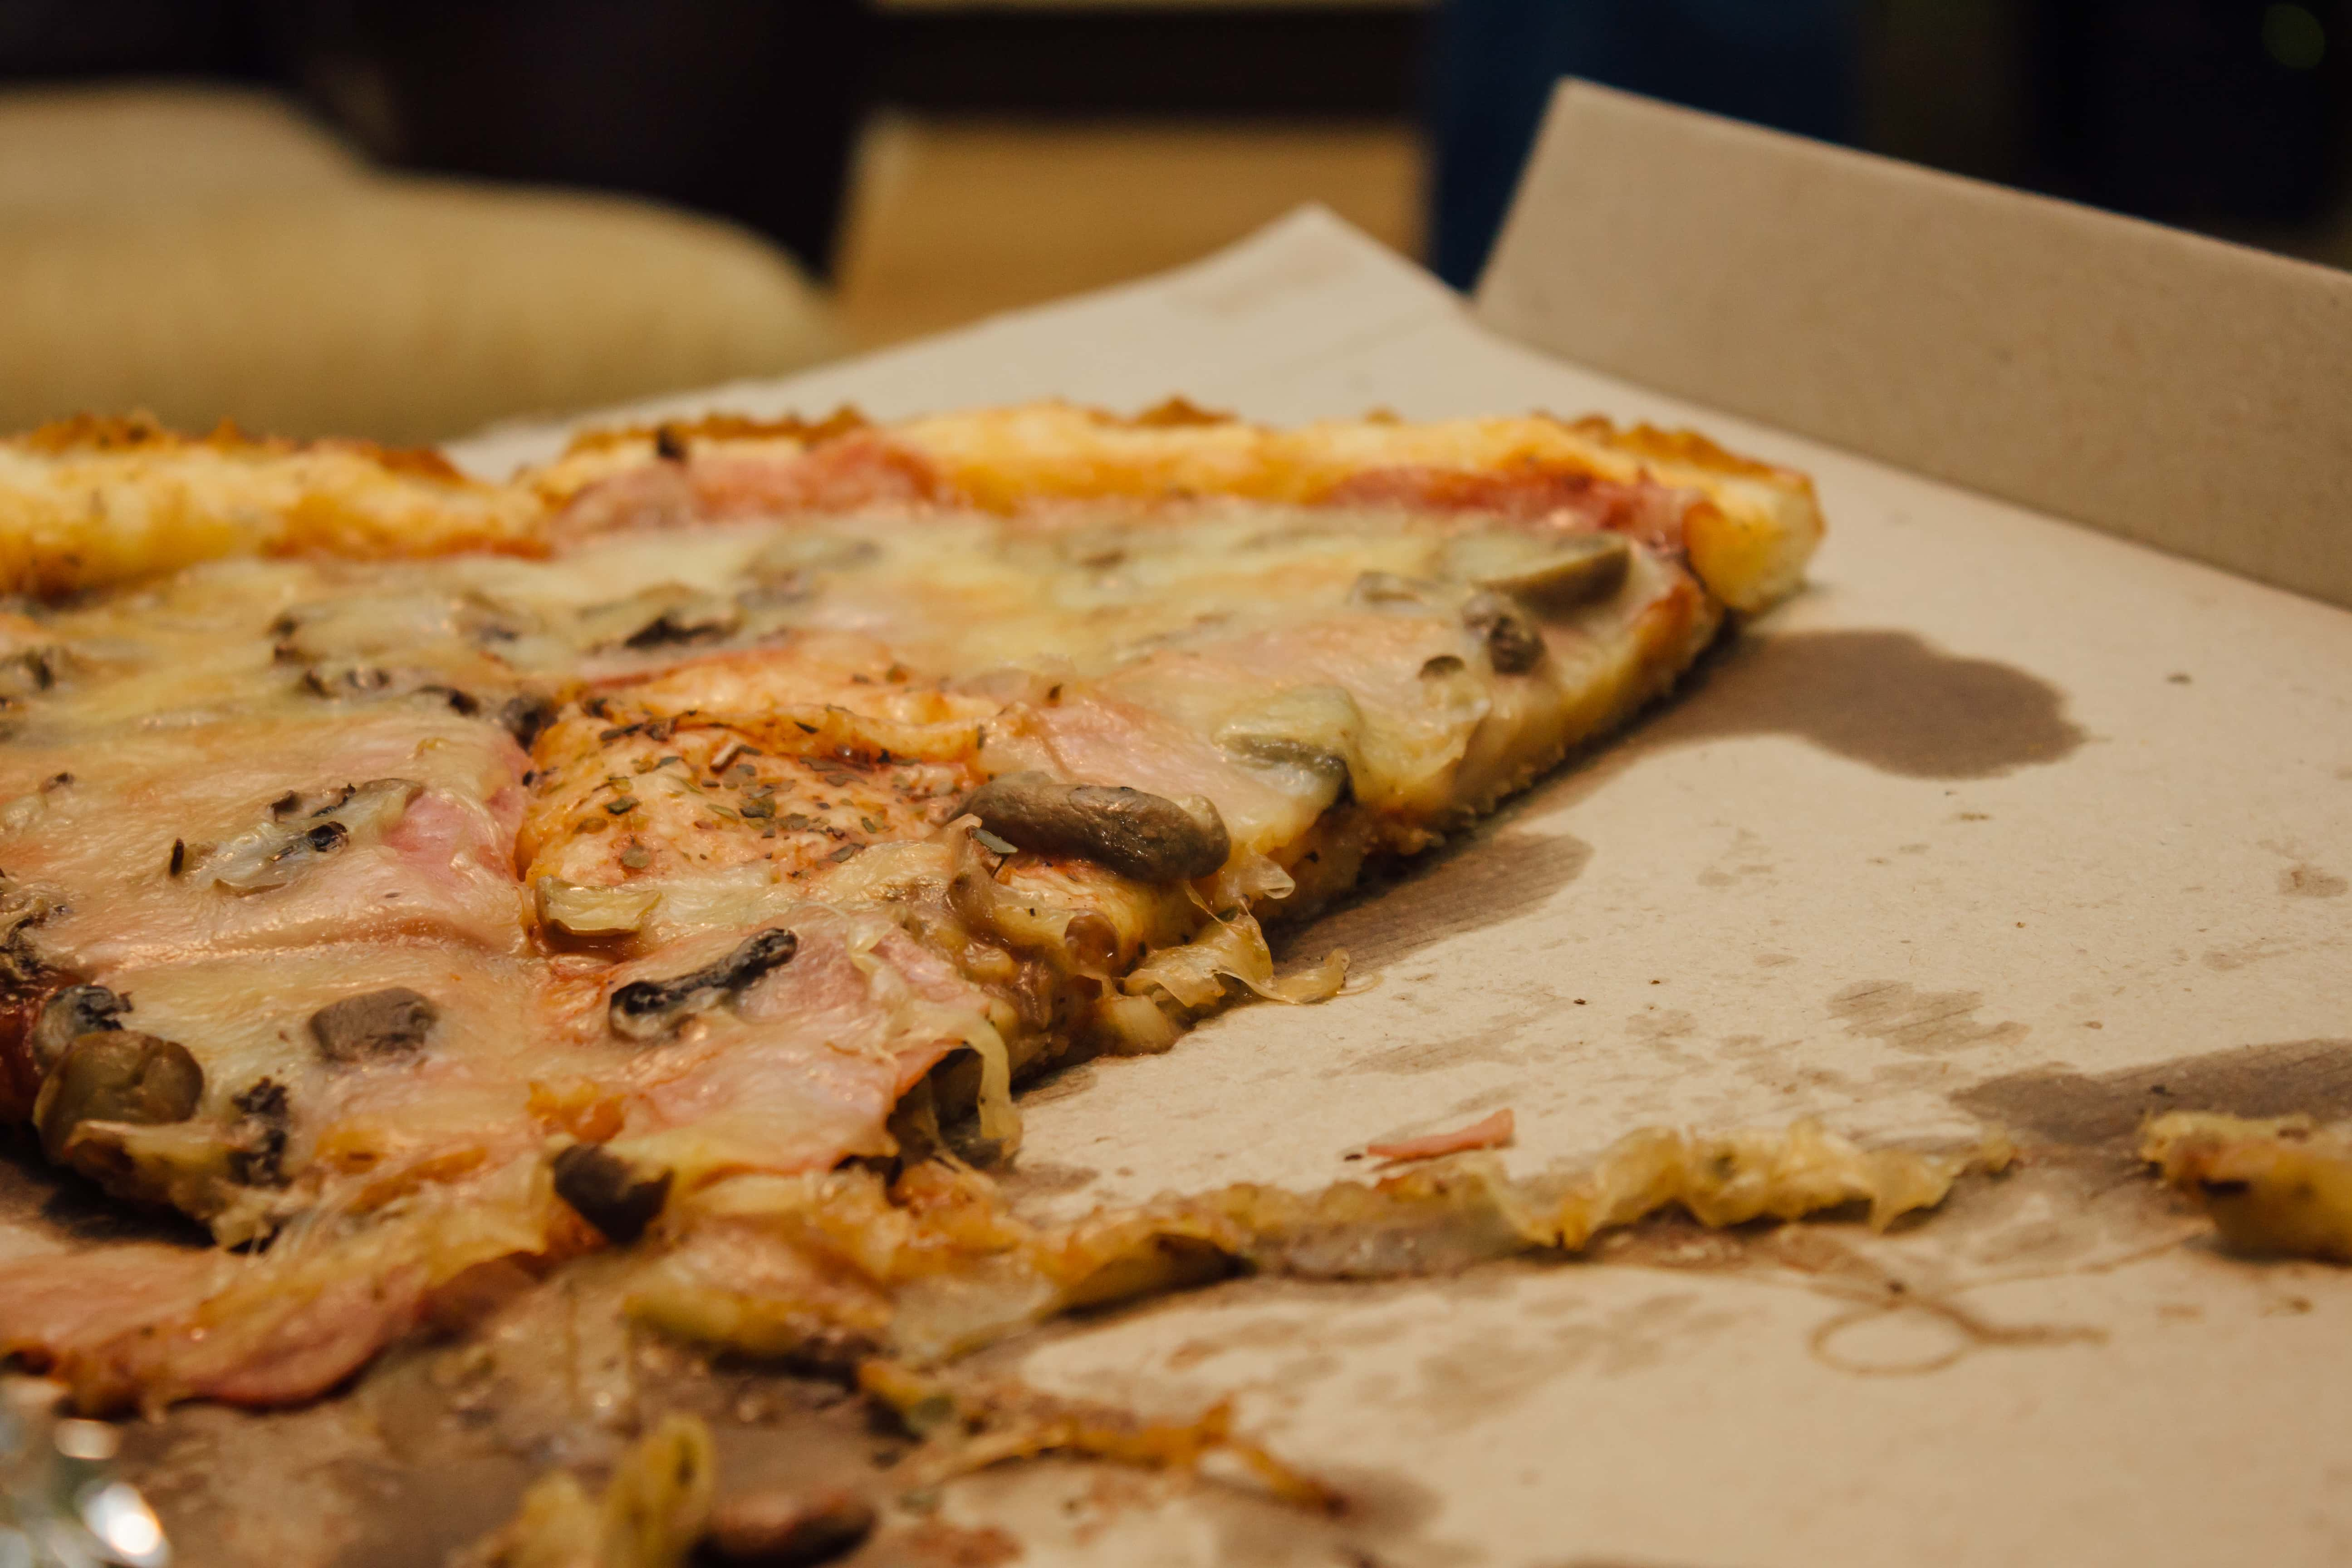 Free Picture Pizza Mushroom Sauce Mozzarella Lunch Meal Cheese Restaurant Dinner Food Delicious